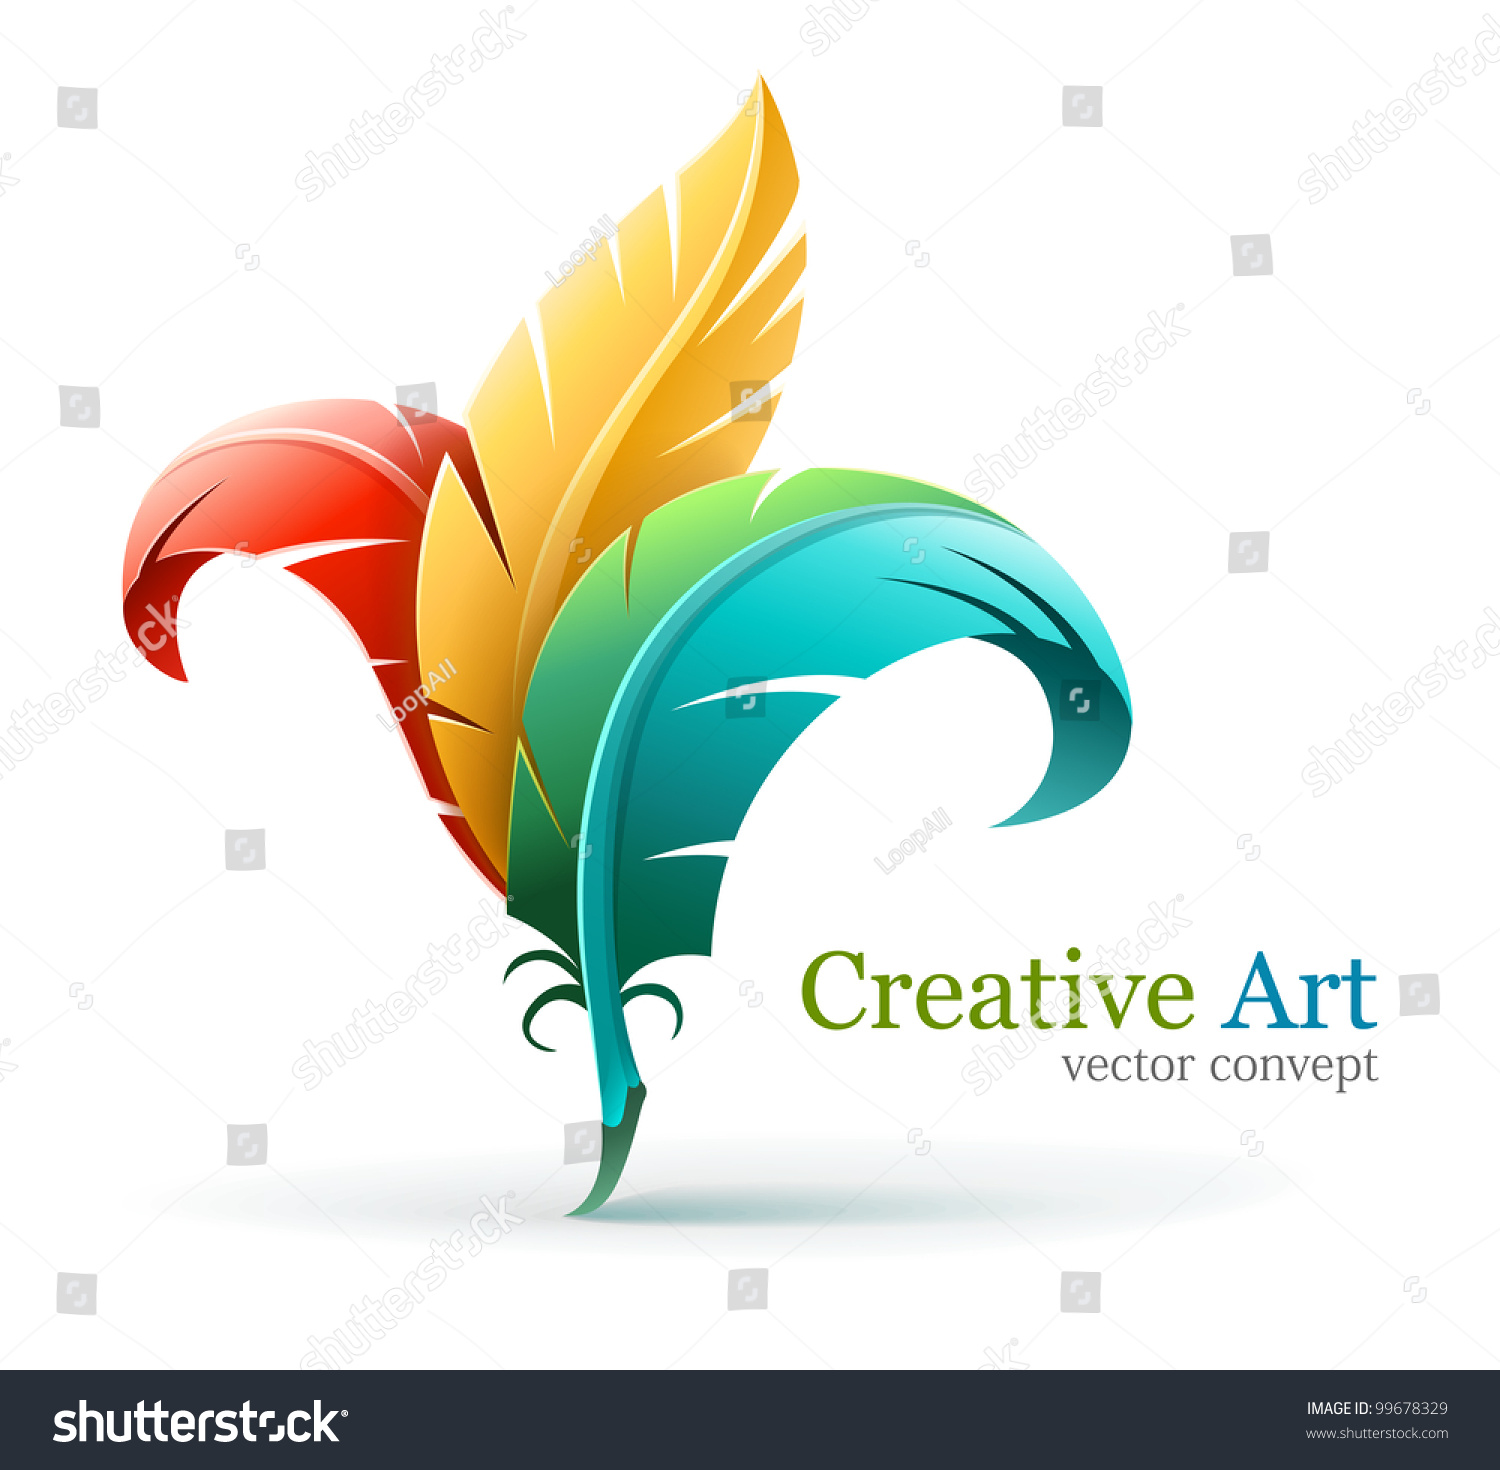 Creative Art Concept With Color Red Yellow And Blue Feathers Vector Illustration Isolated On White